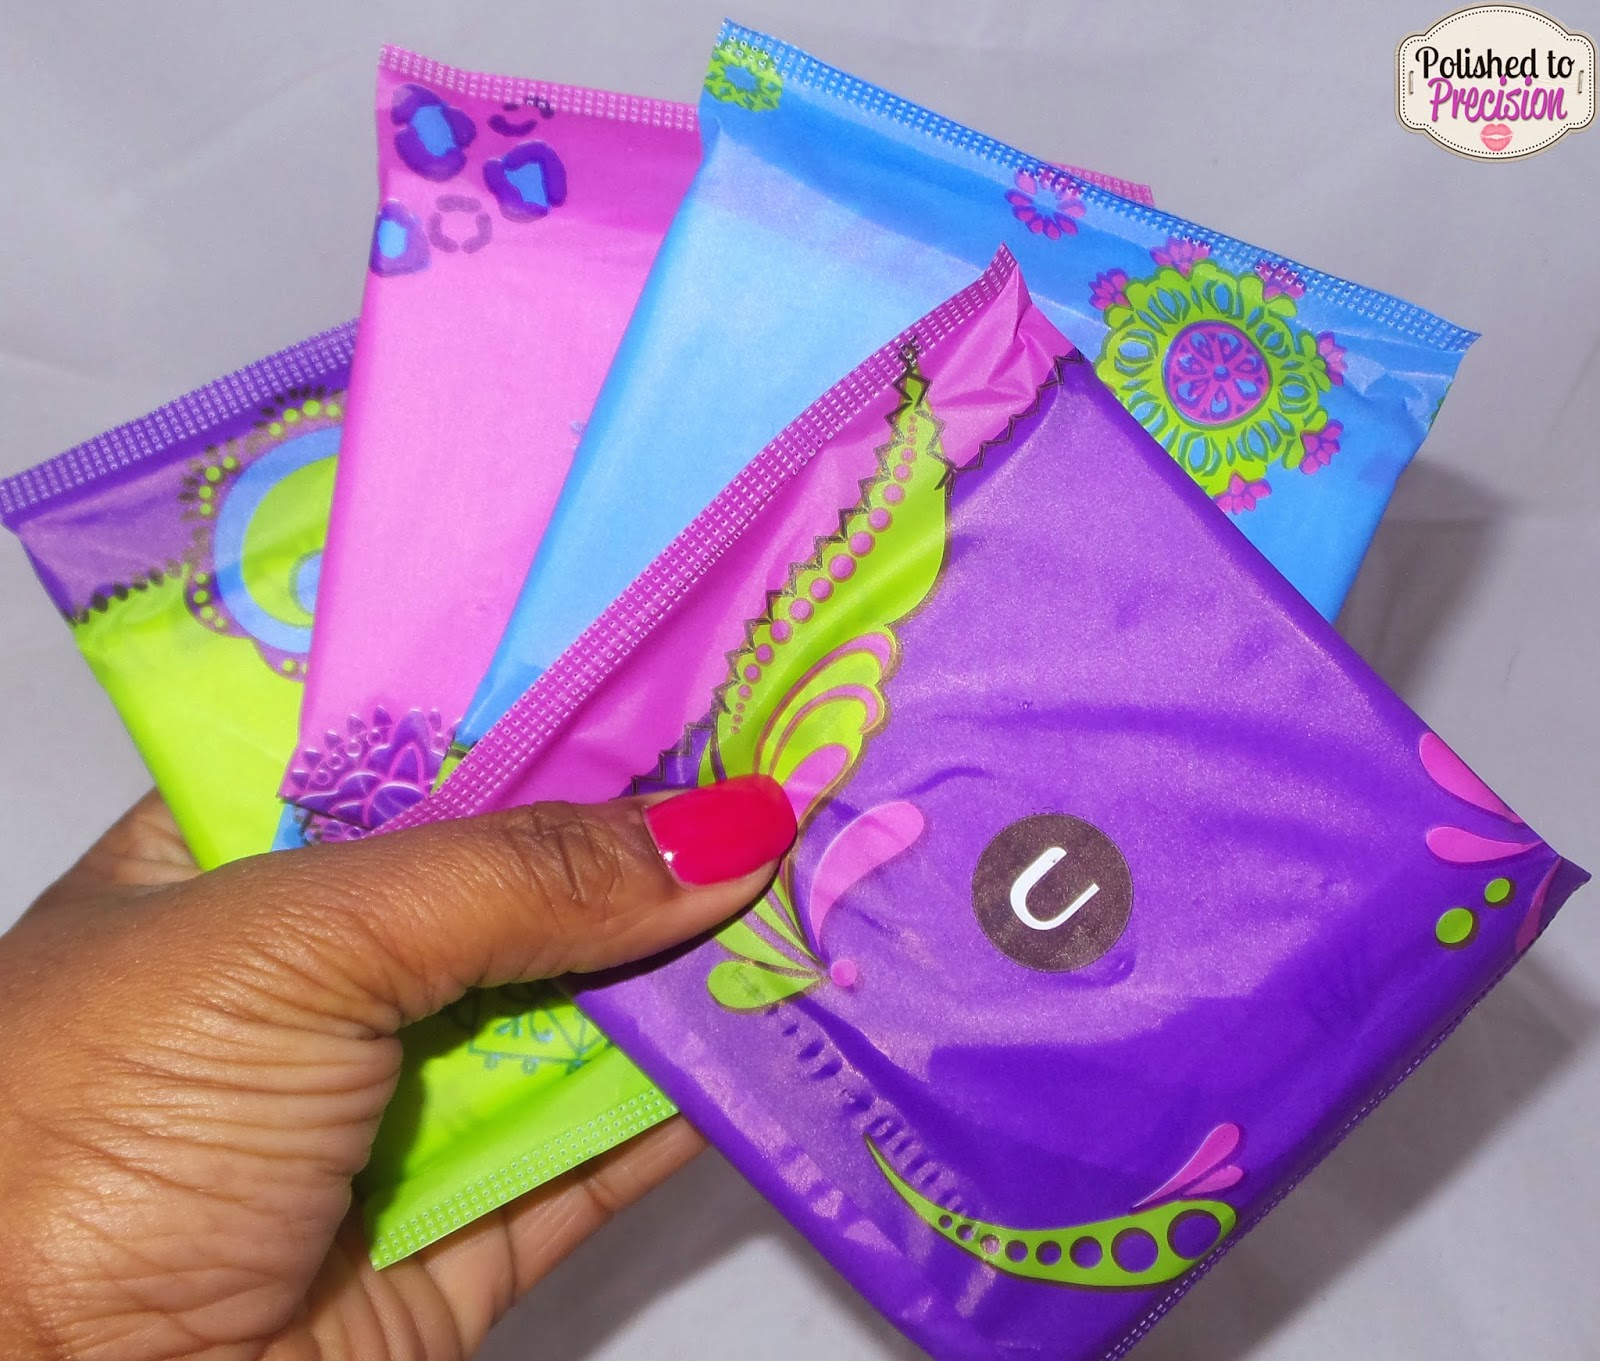 U by Kotex with 3D Capture Core